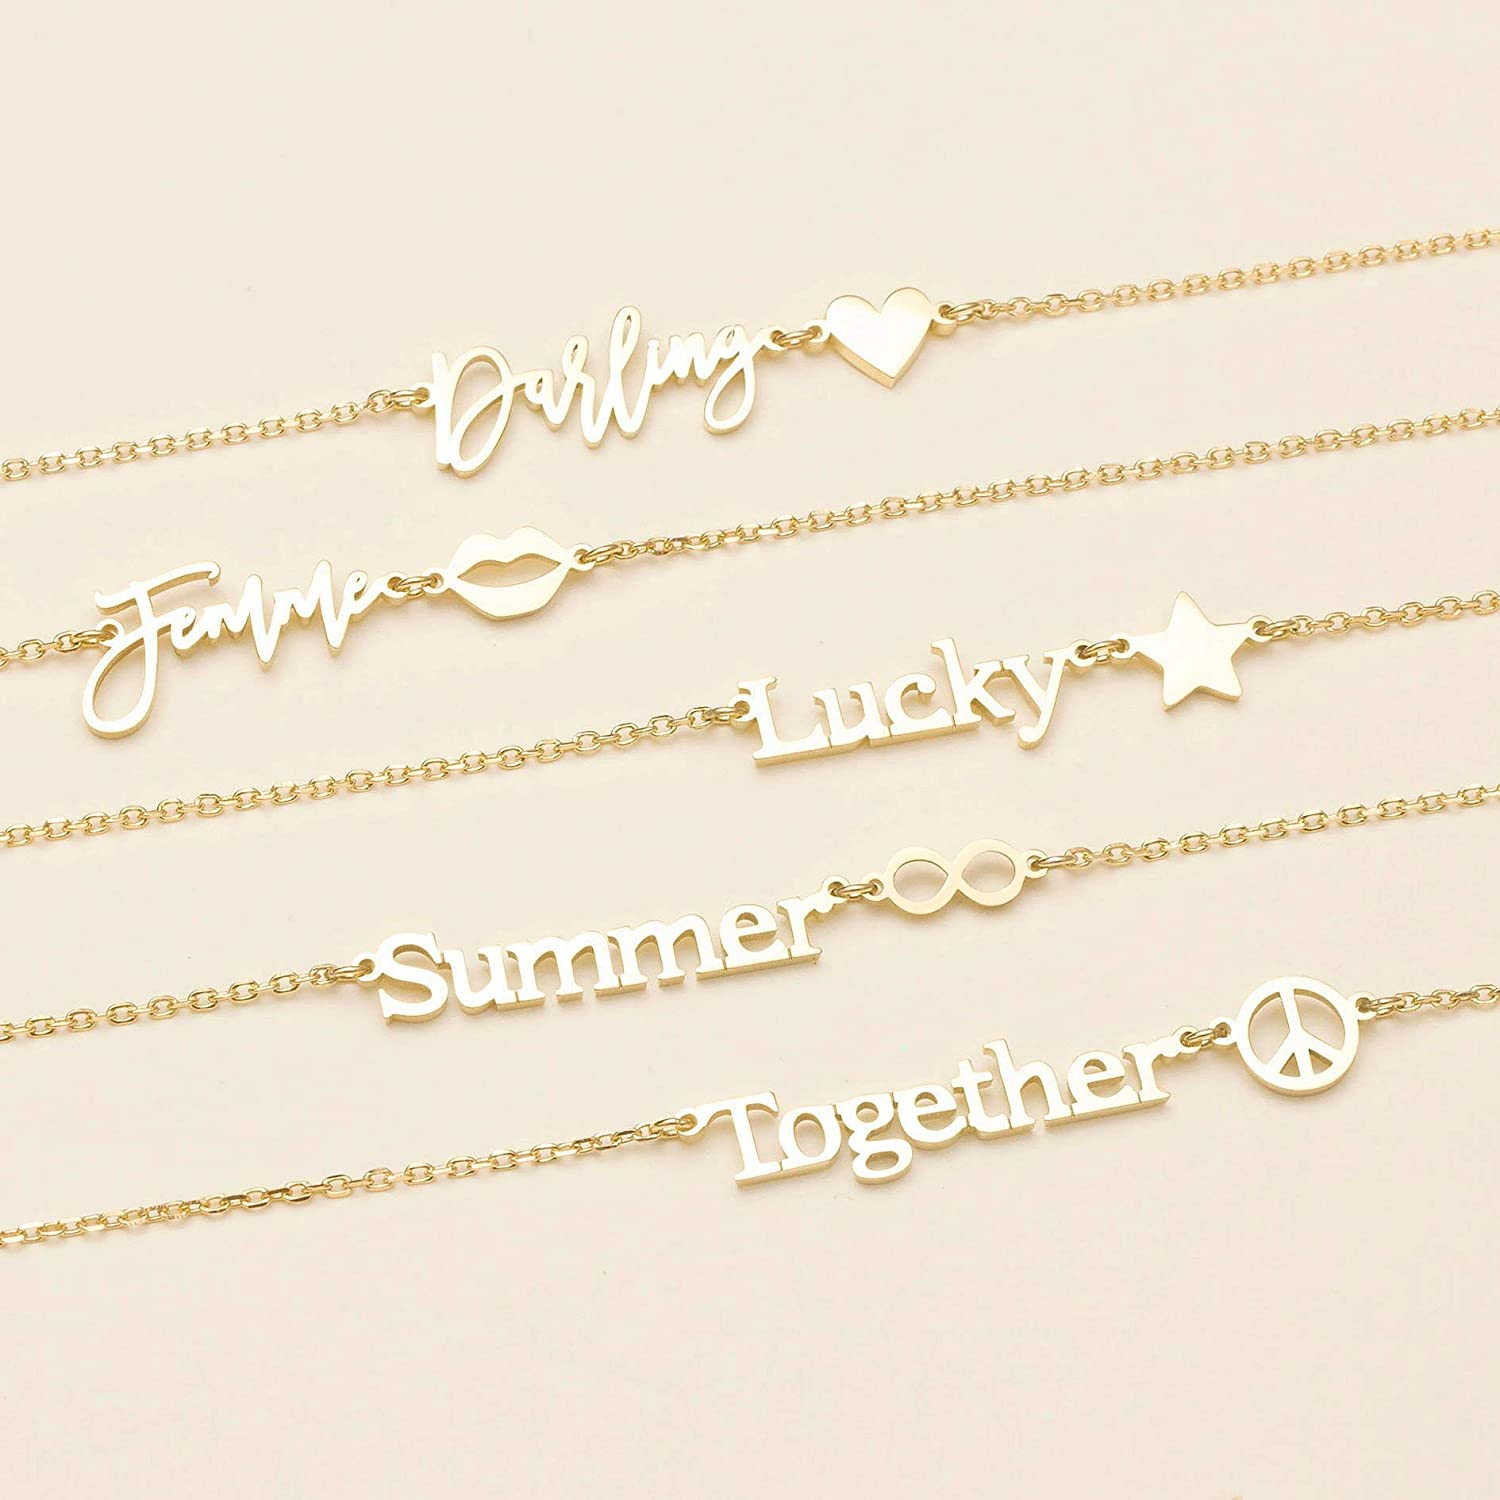 Gold Letter on Sterling silver Gold Letter Necklace Tiny Star Necklace : Personalized 24K Gold engraving Minimalist Star Charm